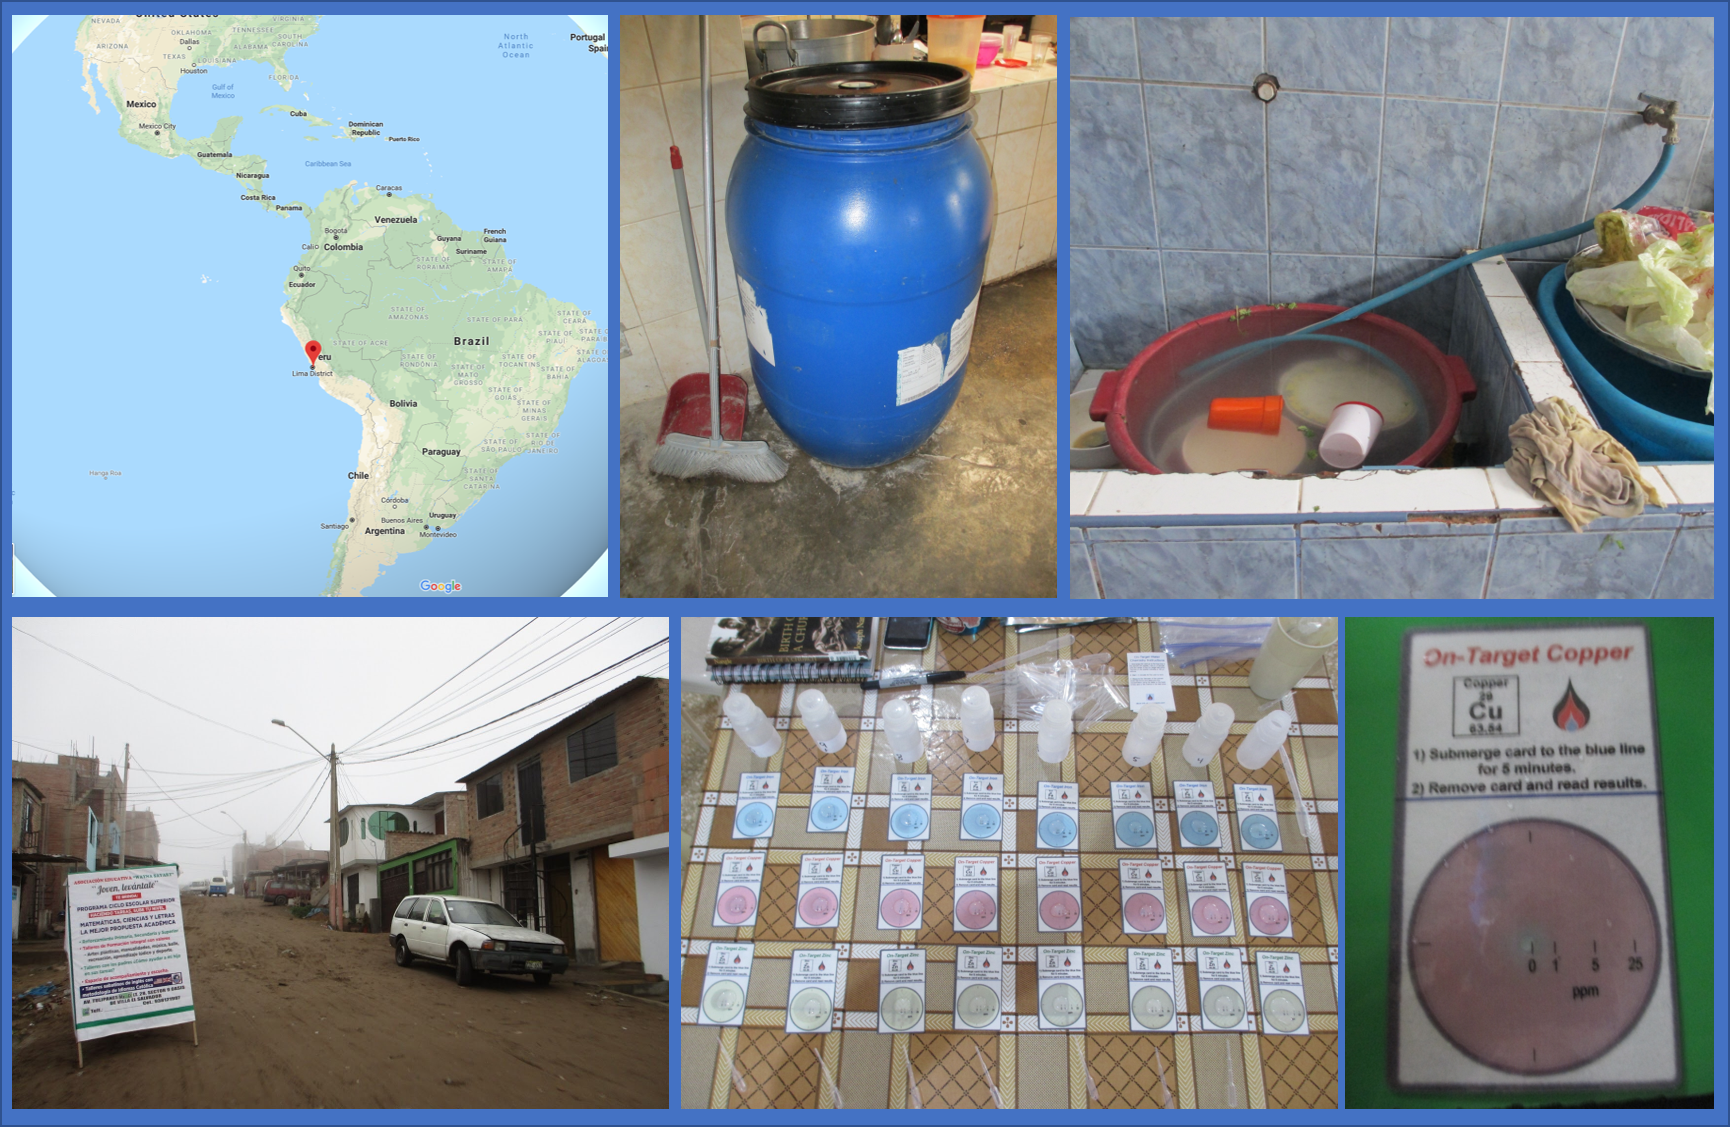 Top Row, Left to Right: Location of Villa El Salvador, Peru. A large plastic barrel that is used for water storage that was one of the sampling locations. A sink used for cooking and cleaning that was another water sampling location.  Bottom Row, Left to Right: A photograph of the Villa El Salvador trip.  On-Target® Water Testing Kits in action. A On-Target® test card used for quantifying dissolved copper in water.